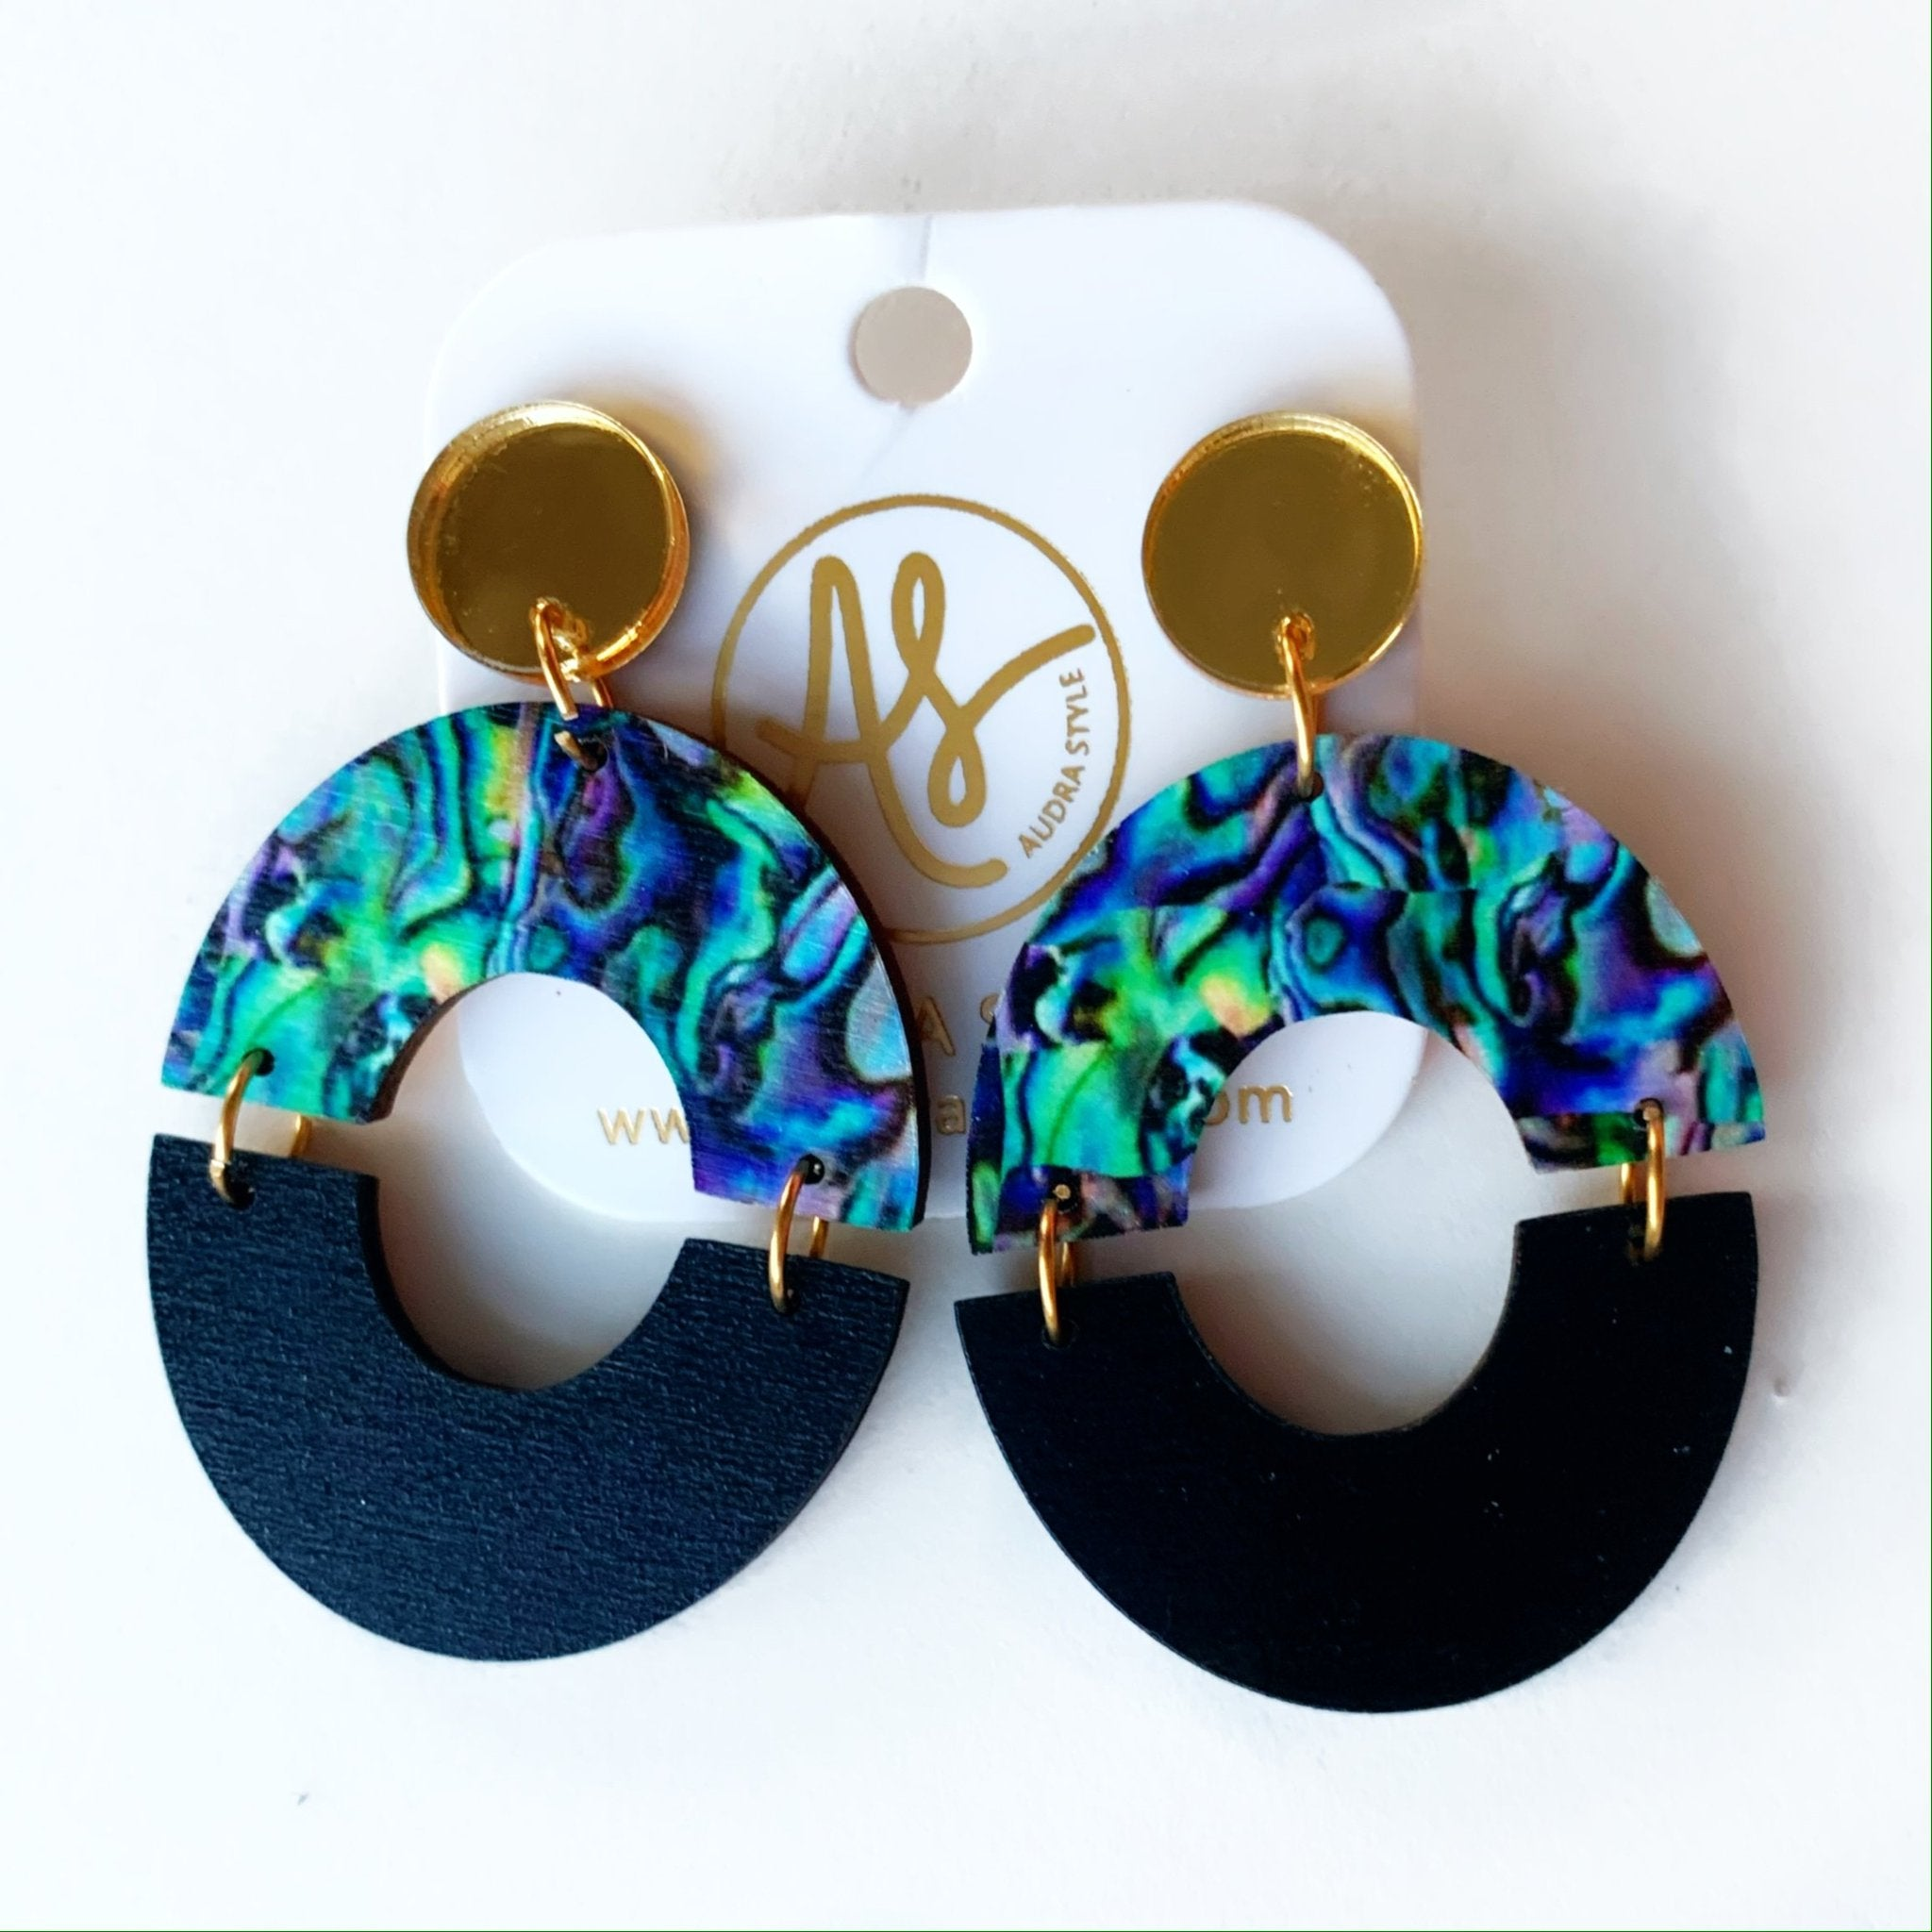 Amanda Earrings in Gold Abalone